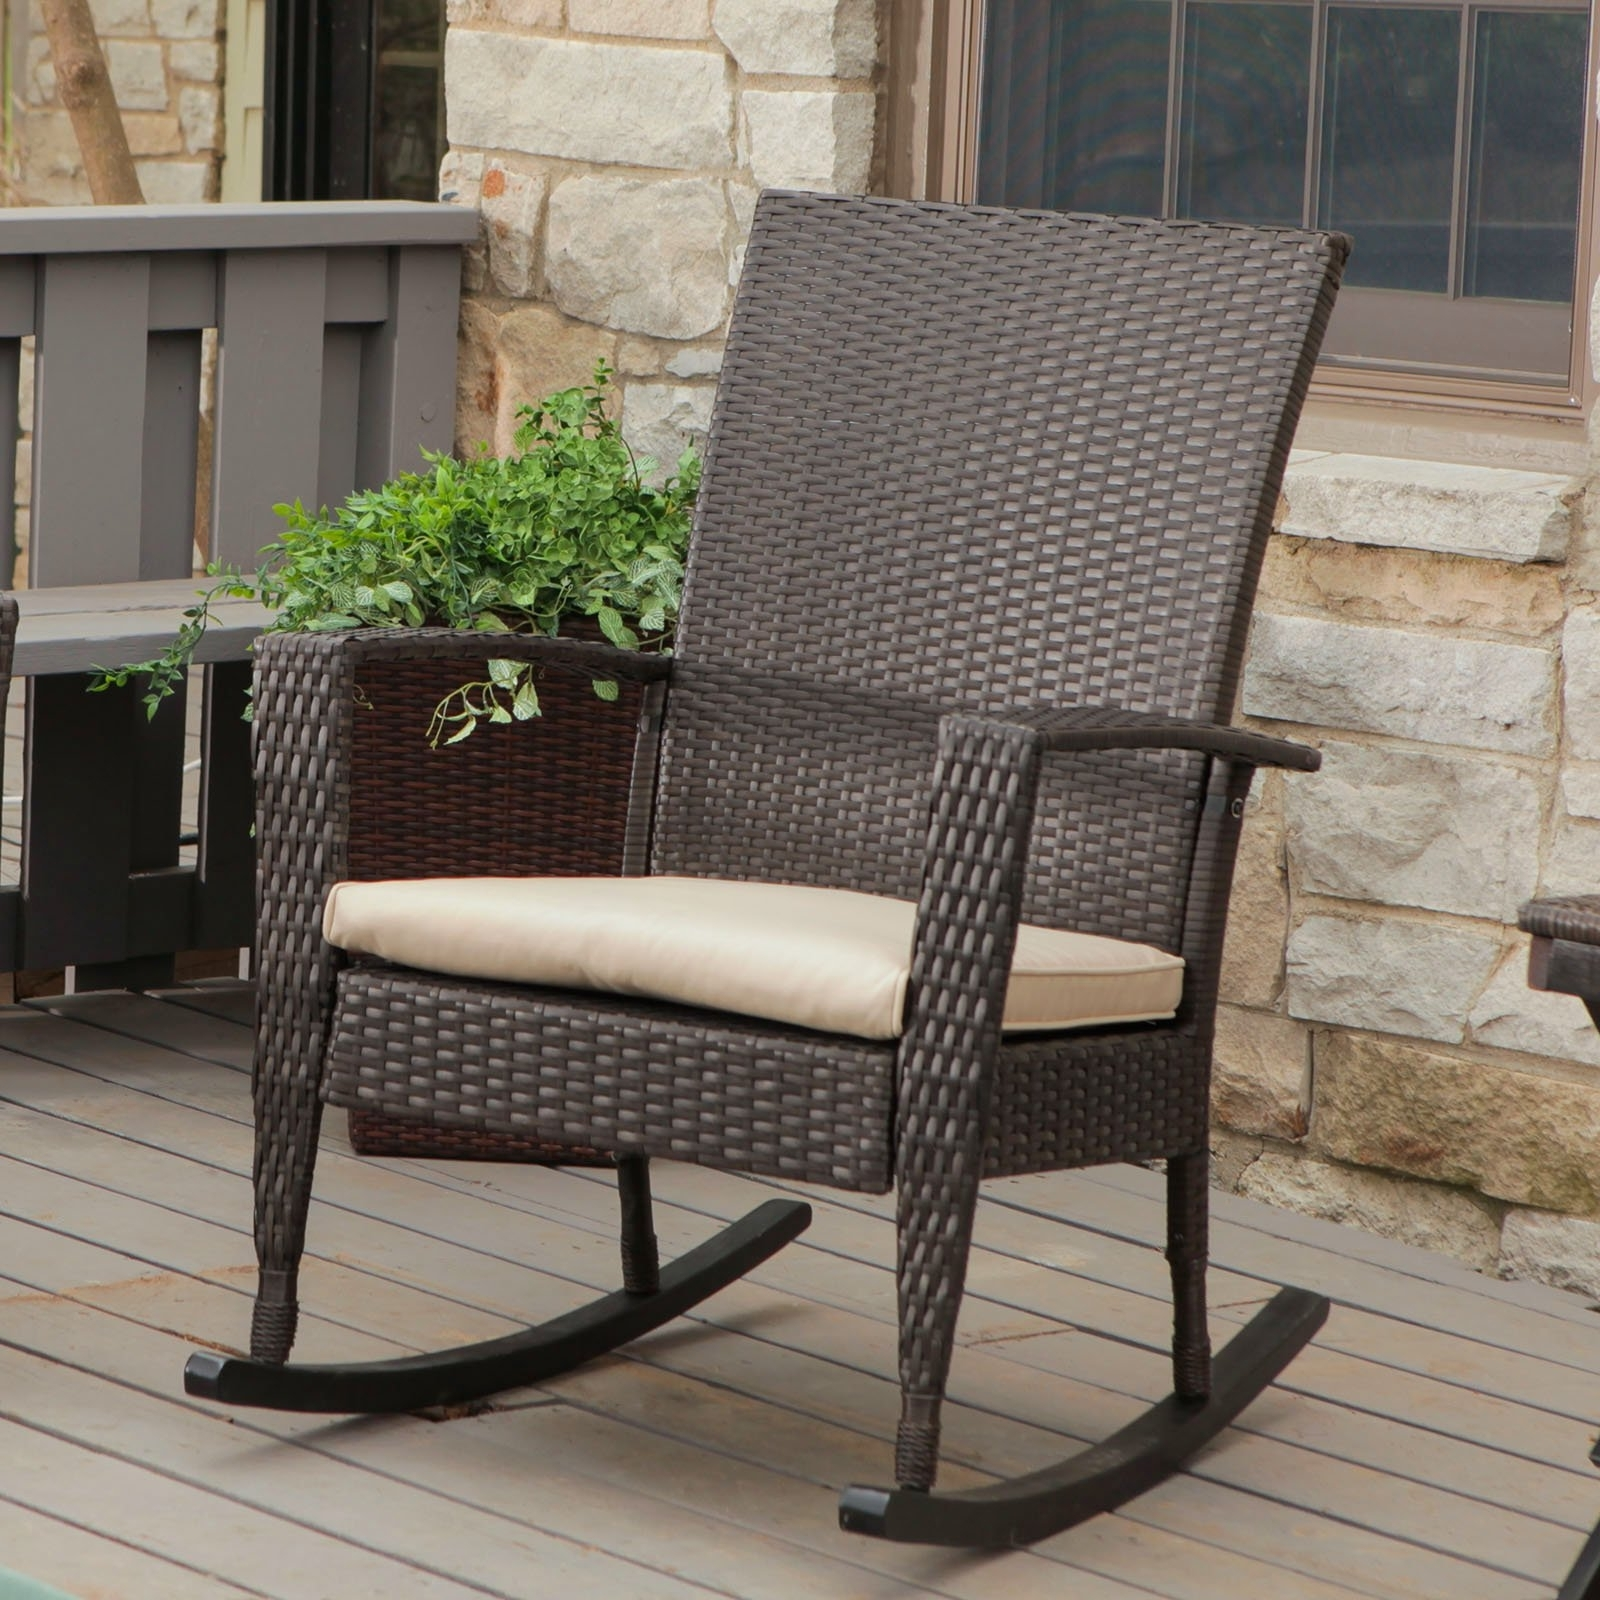 Outdoor Plastic Wicker Rocking Chairs Sale Black Chair Set White In Favorite Plastic Patio Rocking Chairs (View 6 of 15)